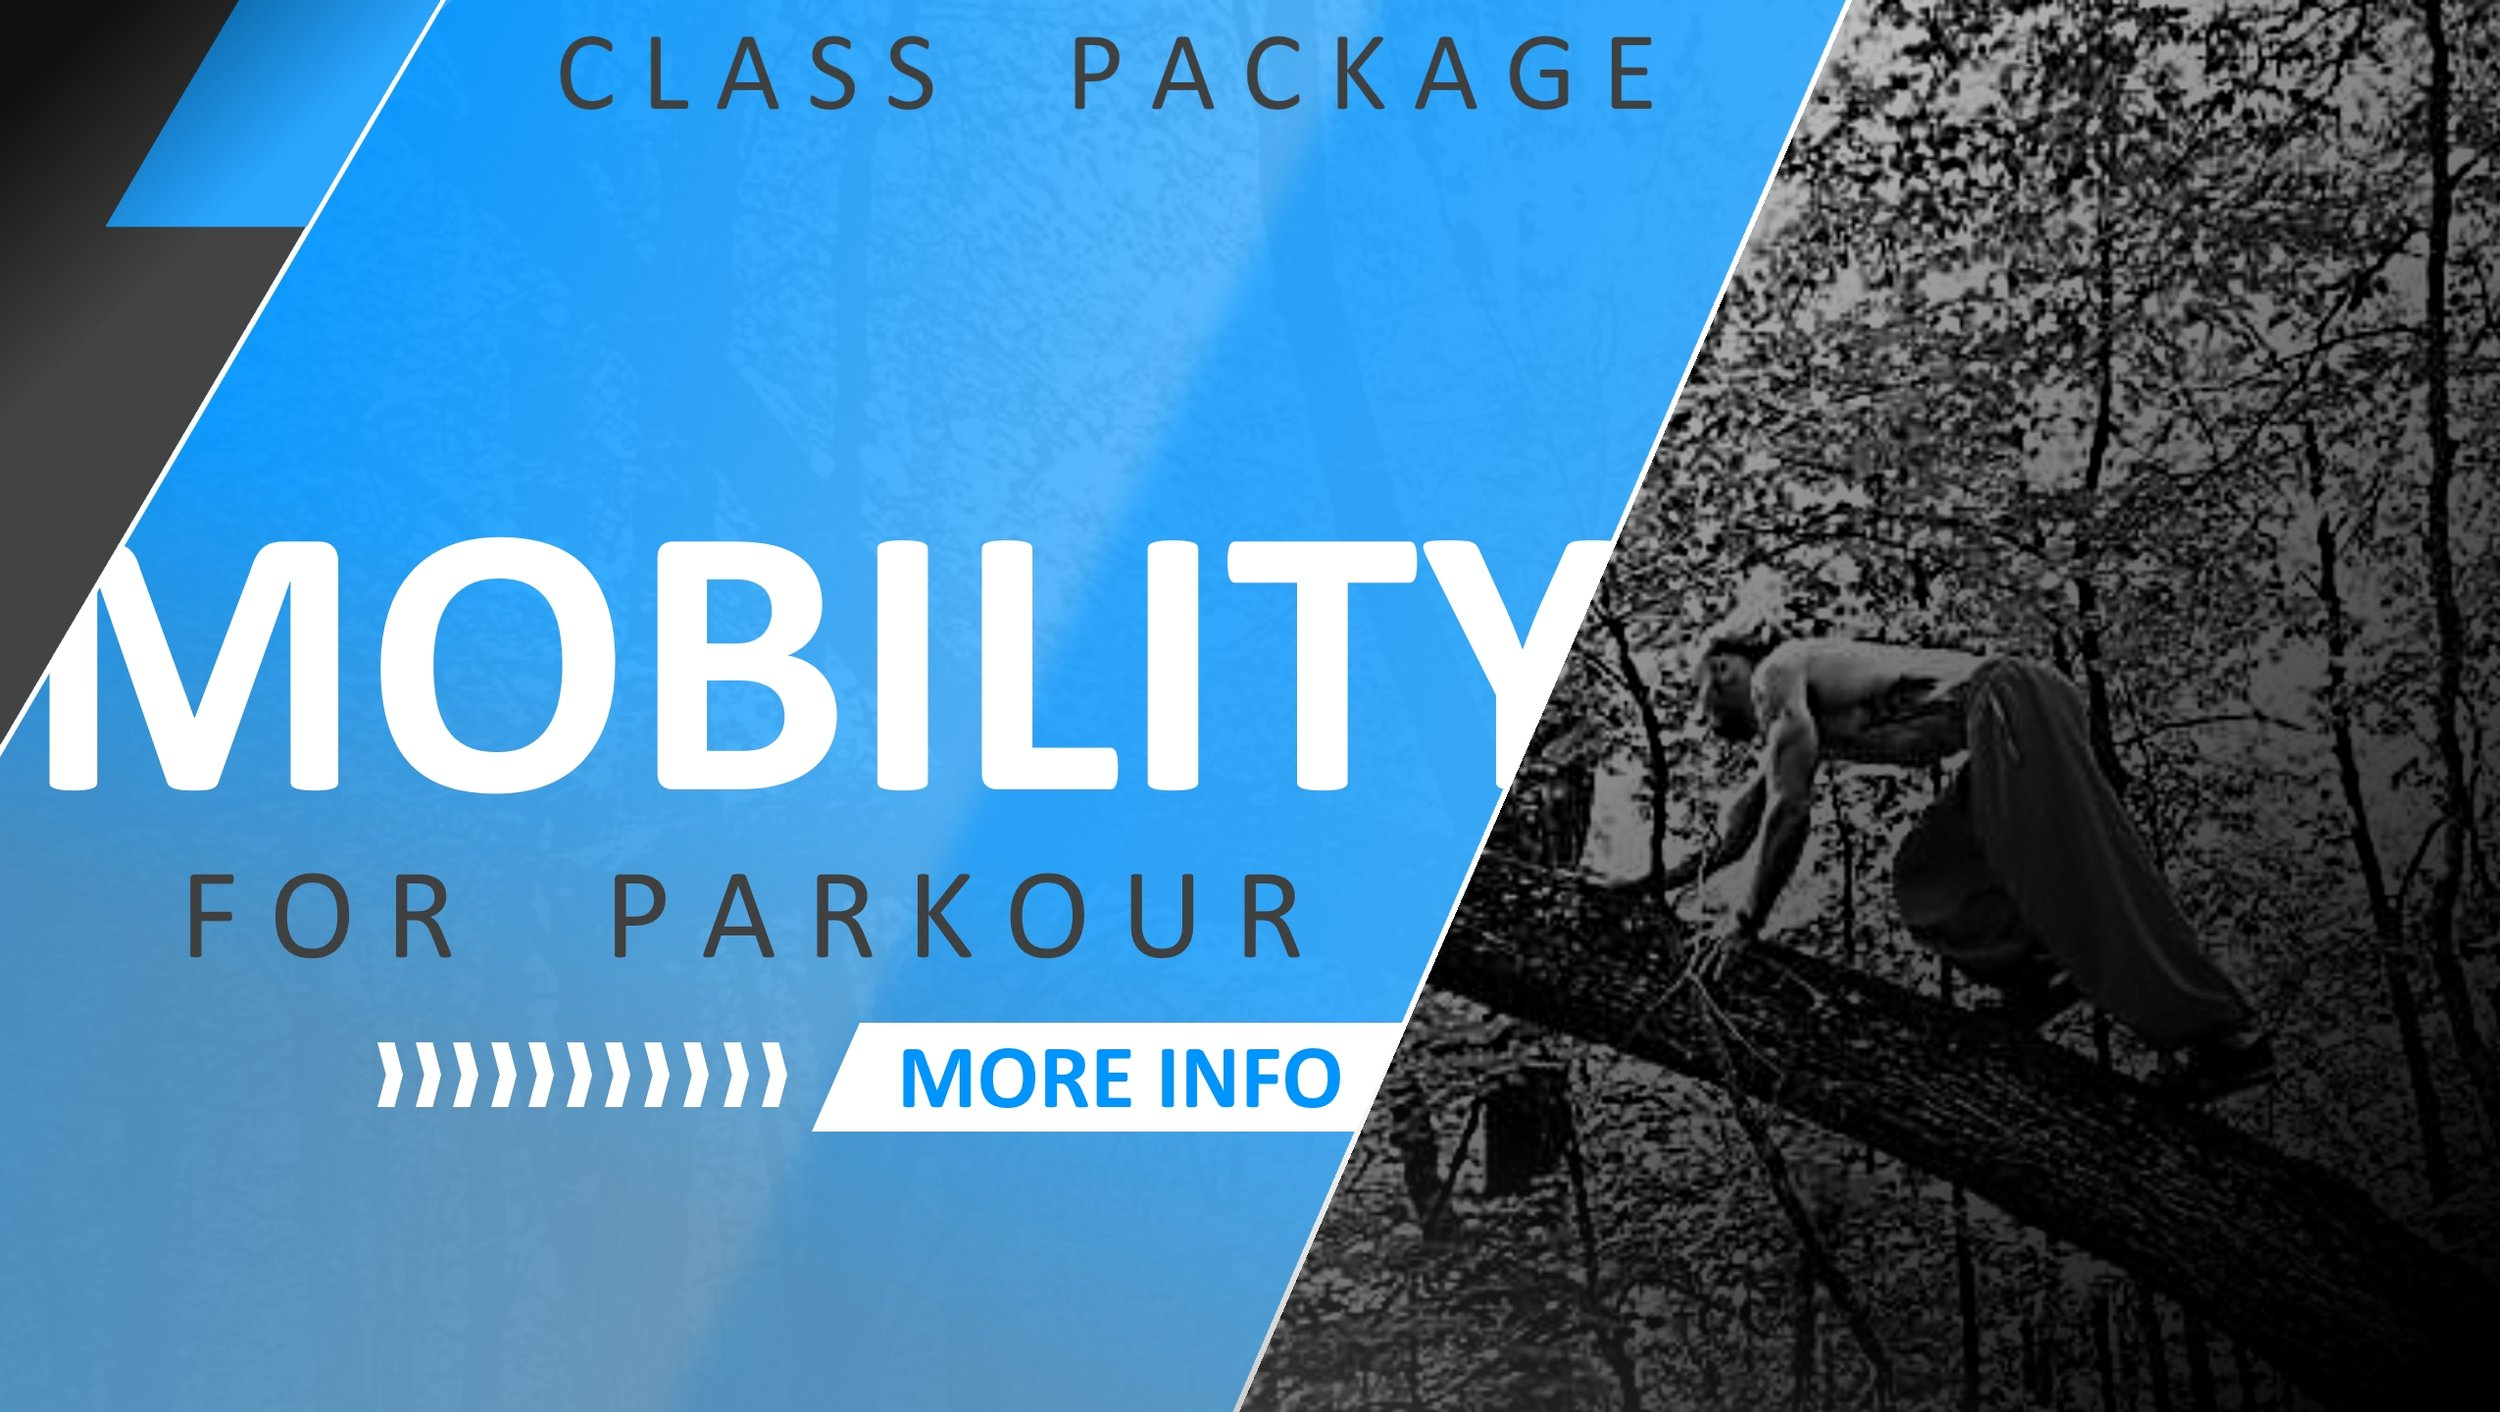 MOBILITY FOR PARKOUR.jpg